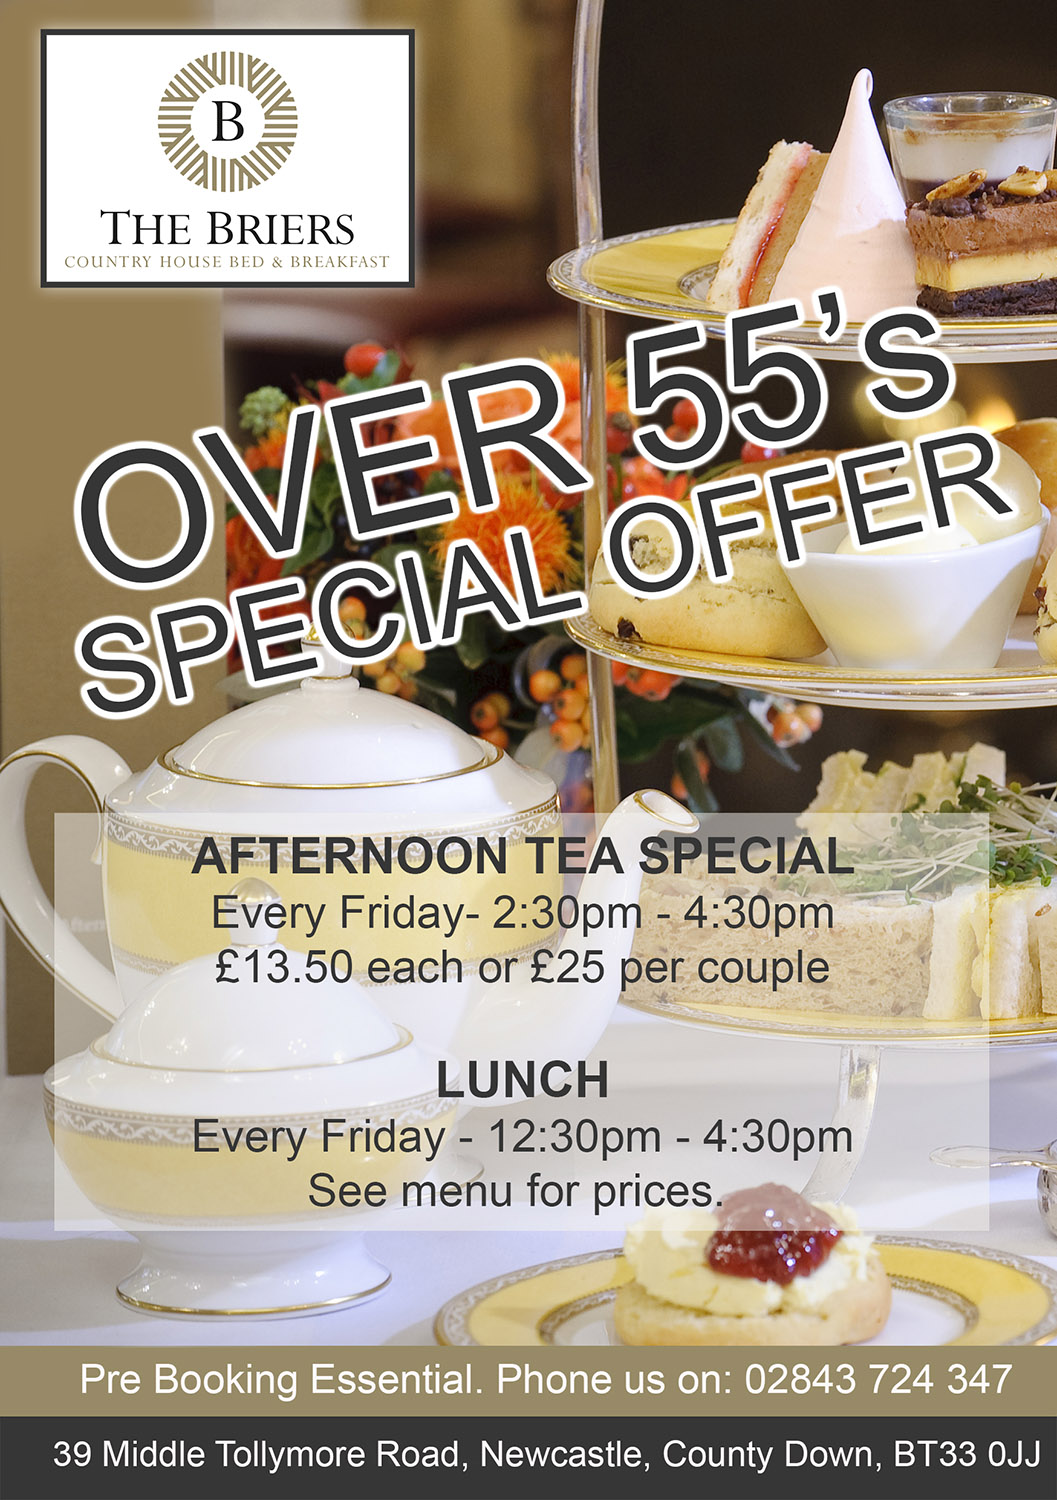 over 55s special offer the briers 2019